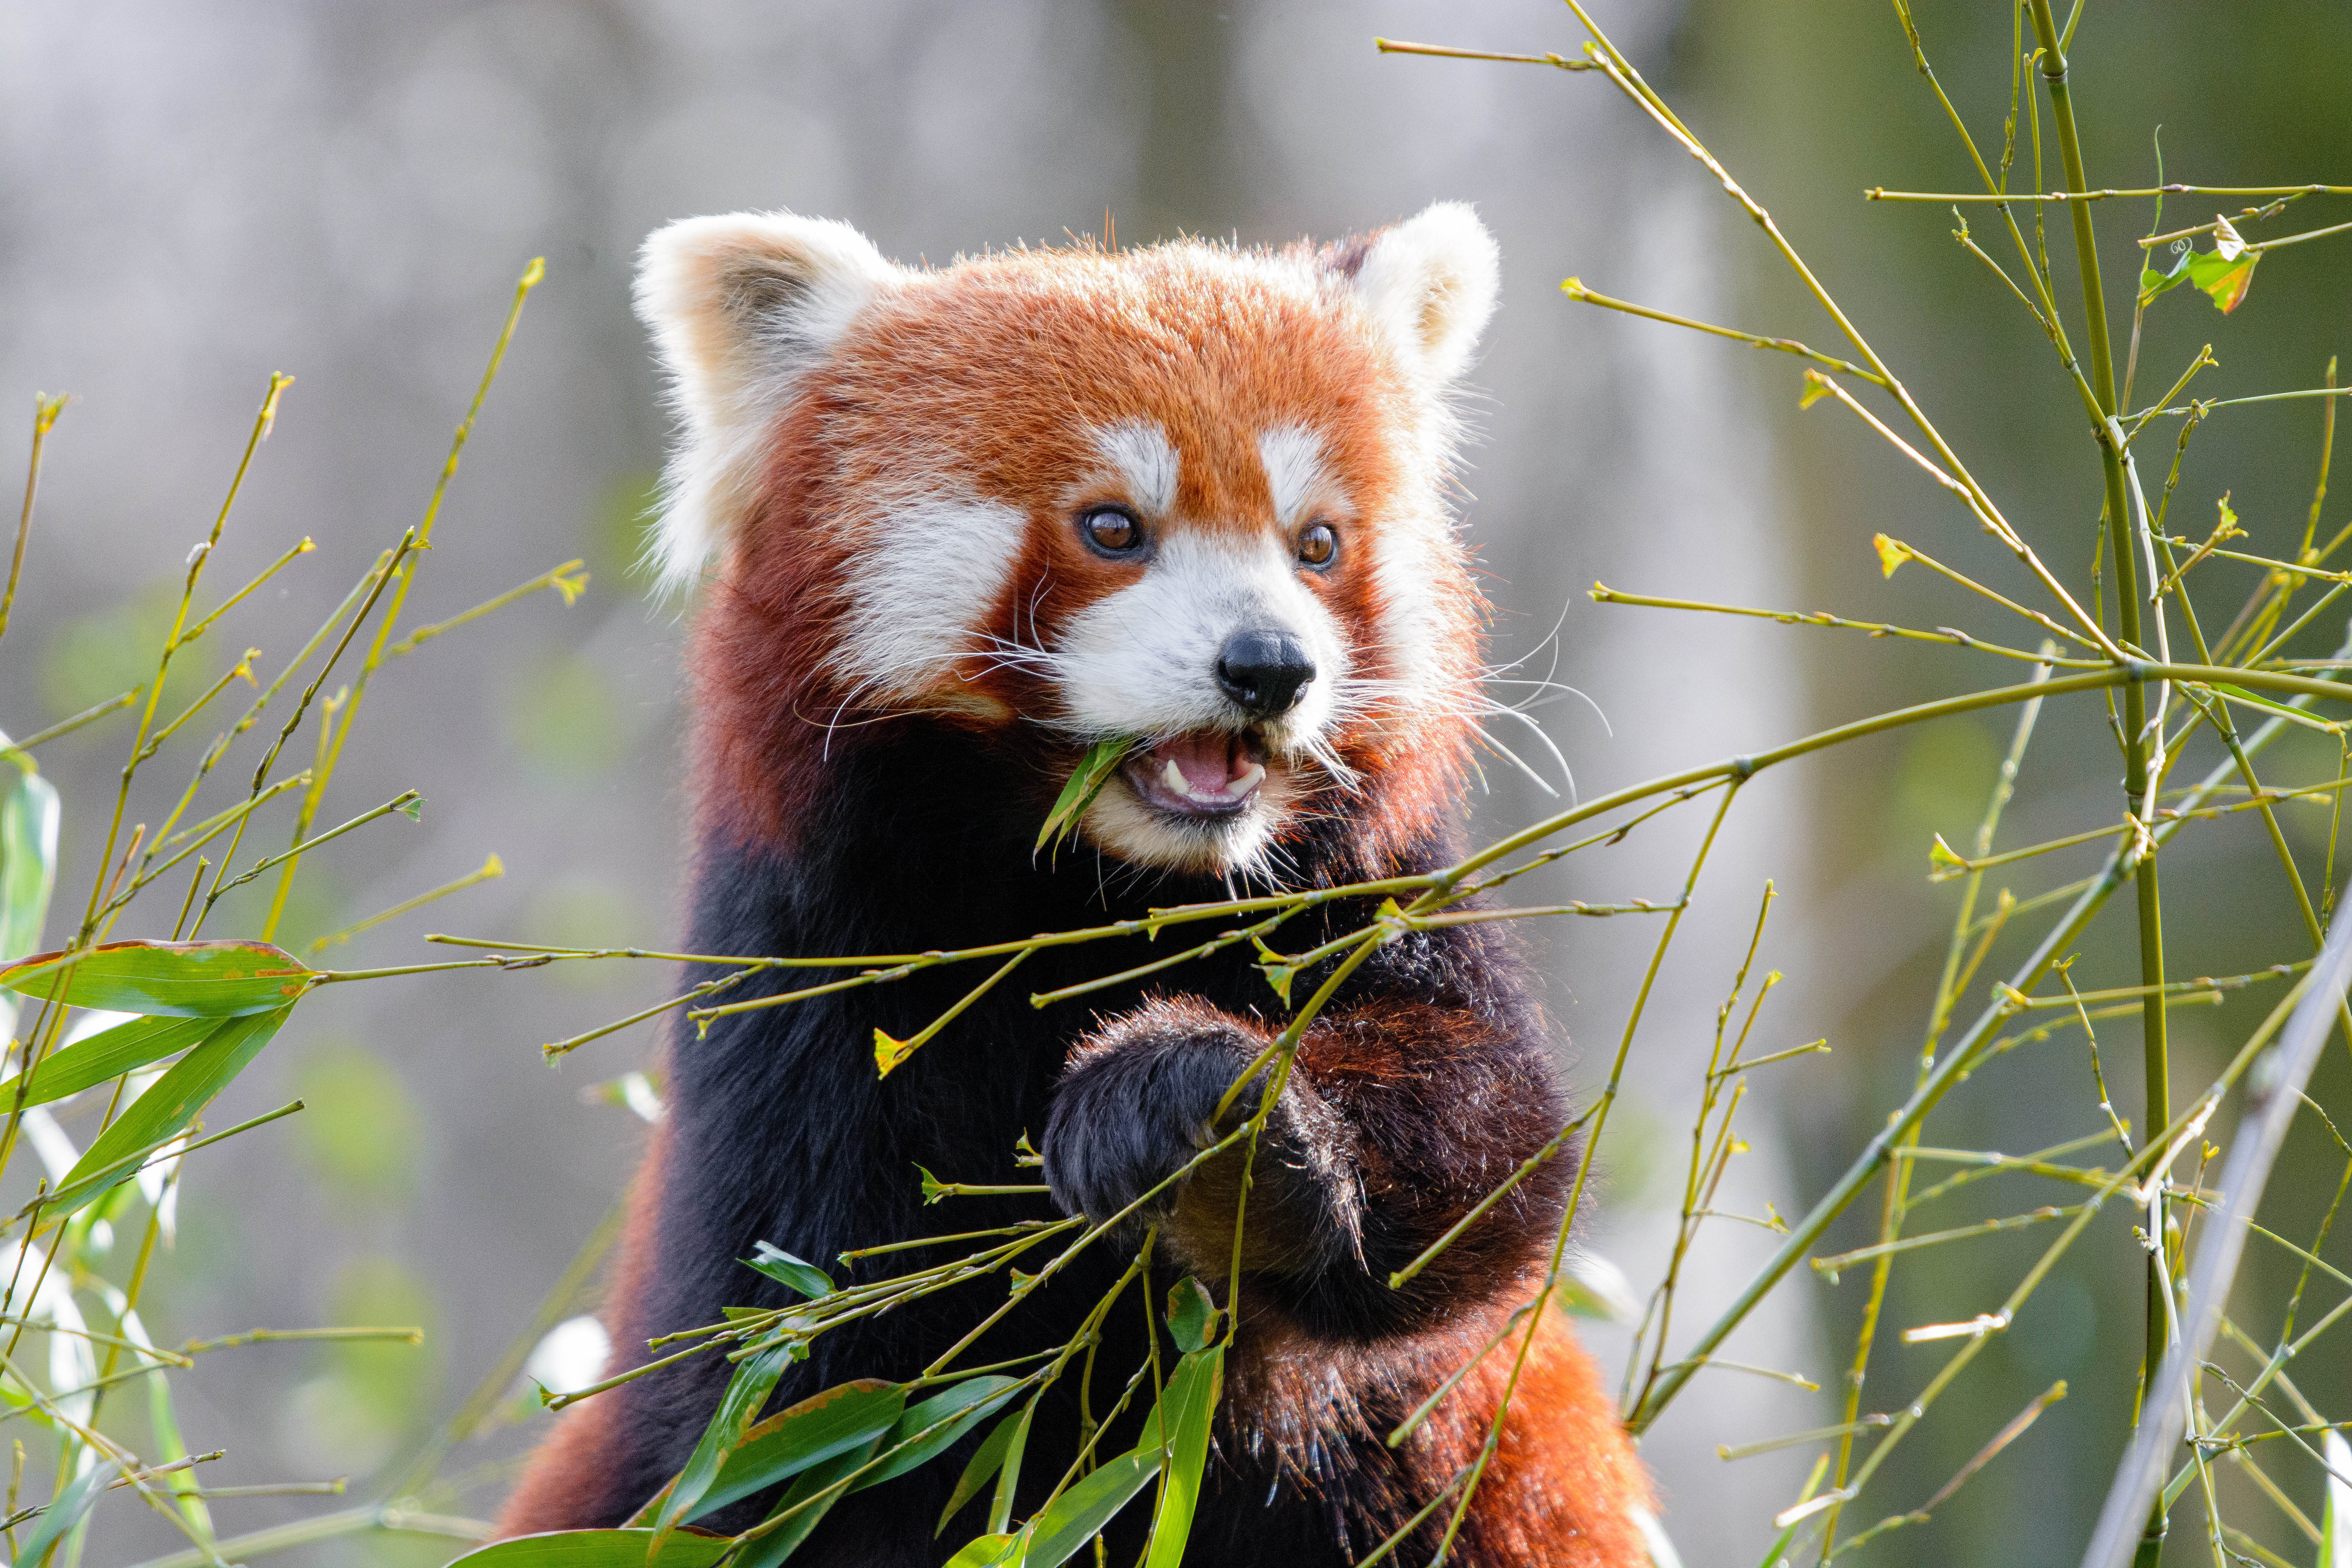 143647 download wallpaper Animals, Red Panda, Bamboo, Nice, Sweetheart, Animal, Leaves screensavers and pictures for free